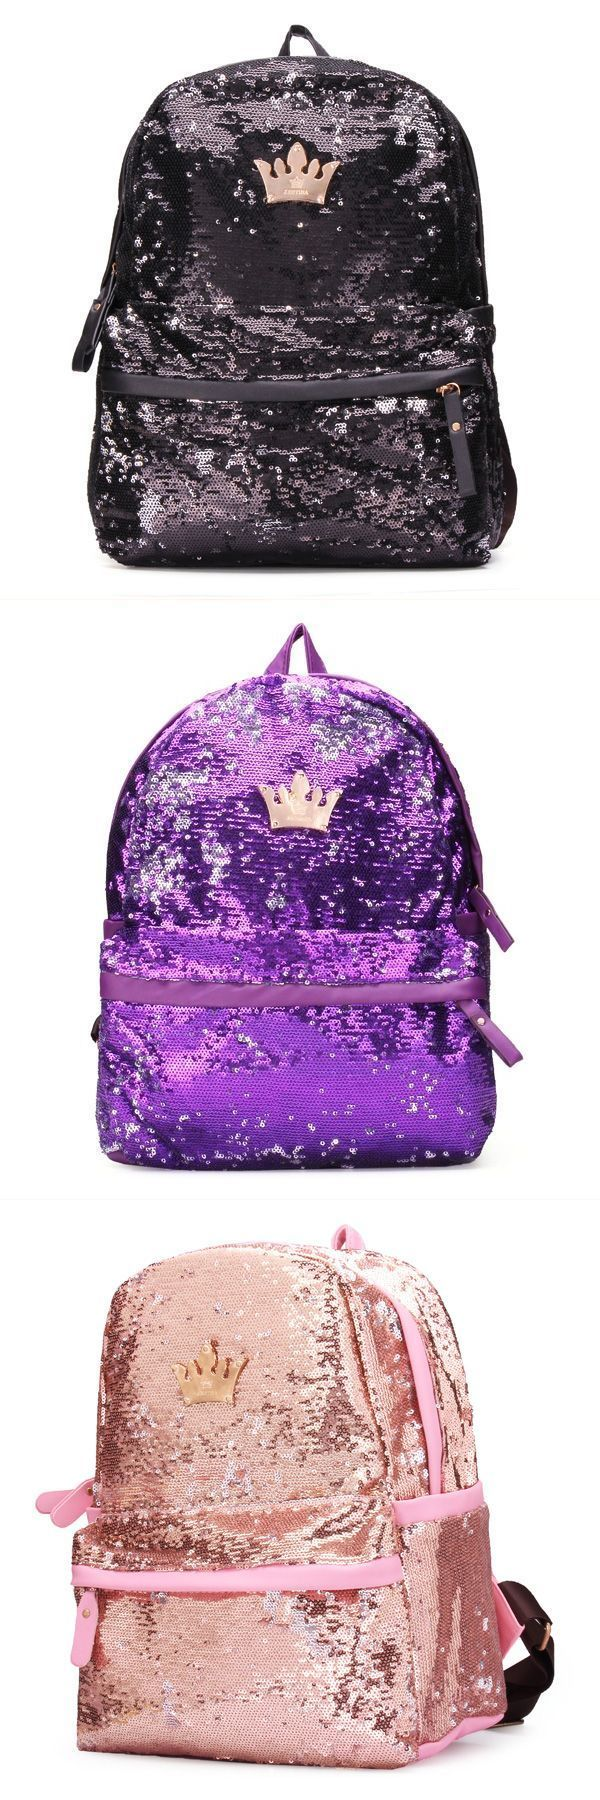 Crown sequin women girls backpack paillette schoolbag  backpack 72 hour kit #backpack #and #lunchbox #backpackers #inn #taipei #backpacking #8 #miles #r #kelly #backpack